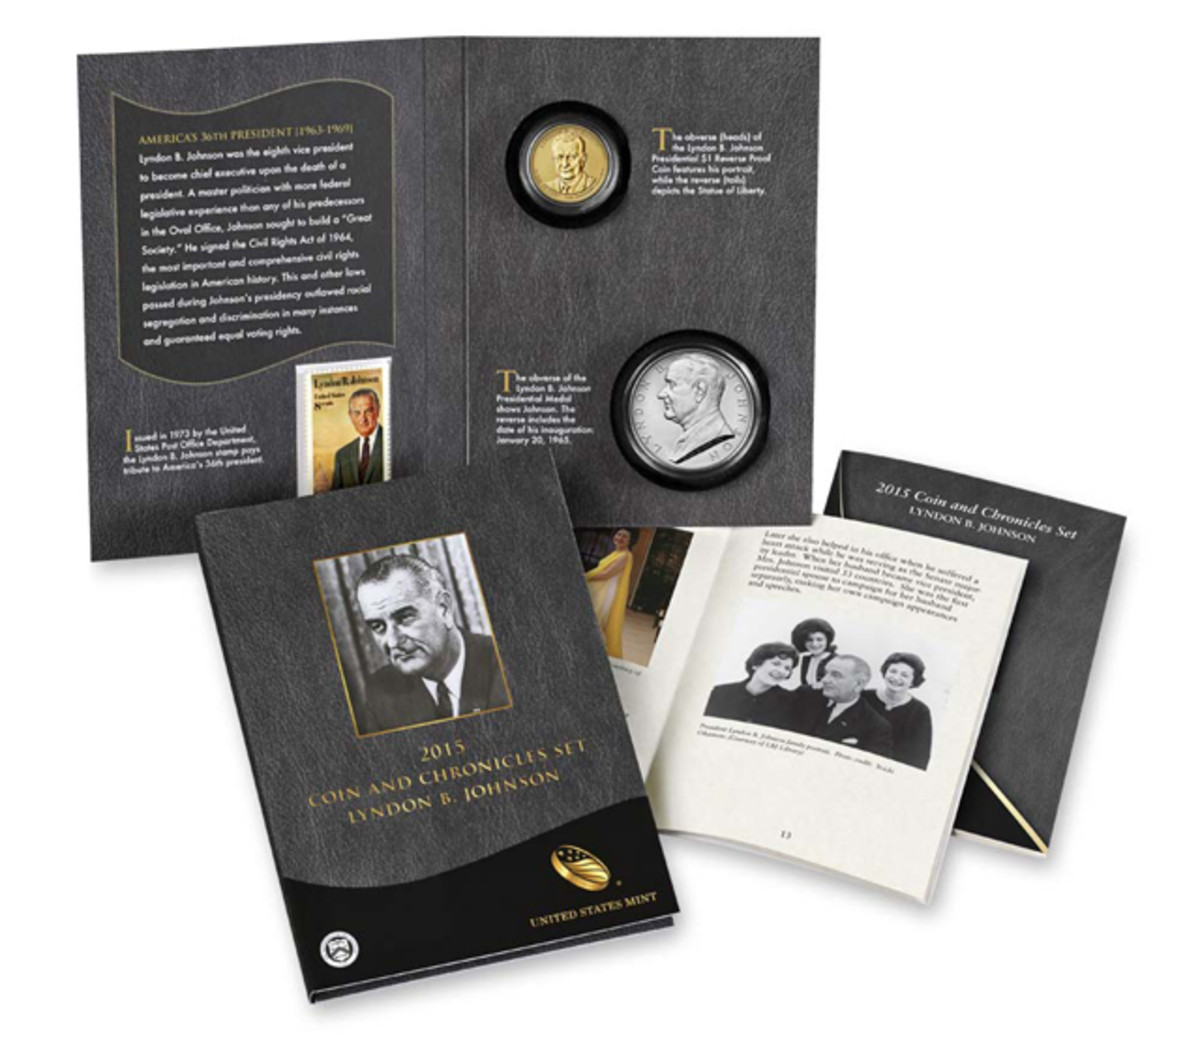 The Johnson Coin and Chronicles set, while not an immediate sellout, still saw its entire inventory purchased the first day.